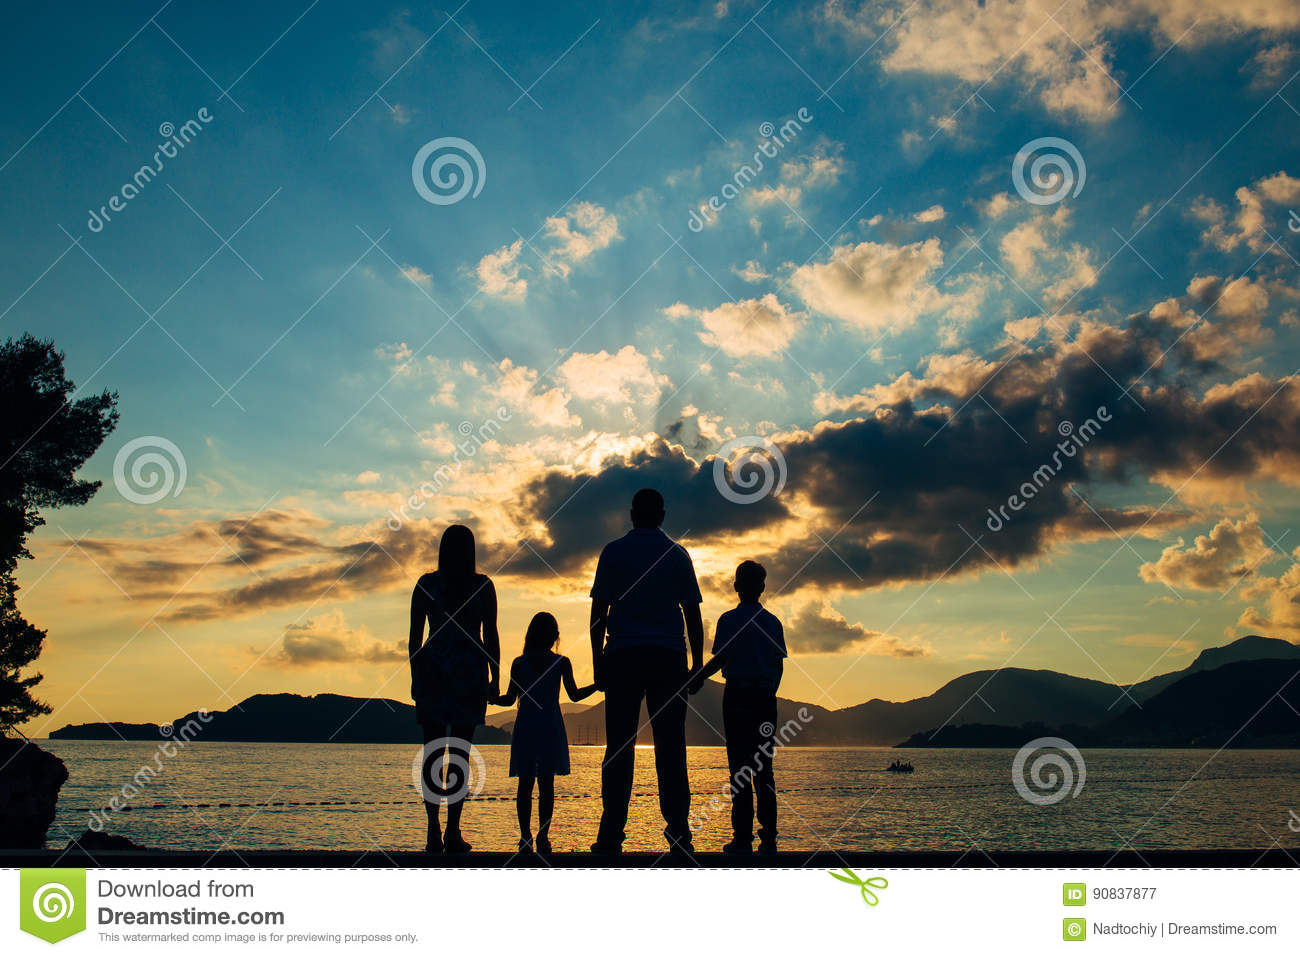 Silhouette of a family with children against the backdrop of the setting sun and sea